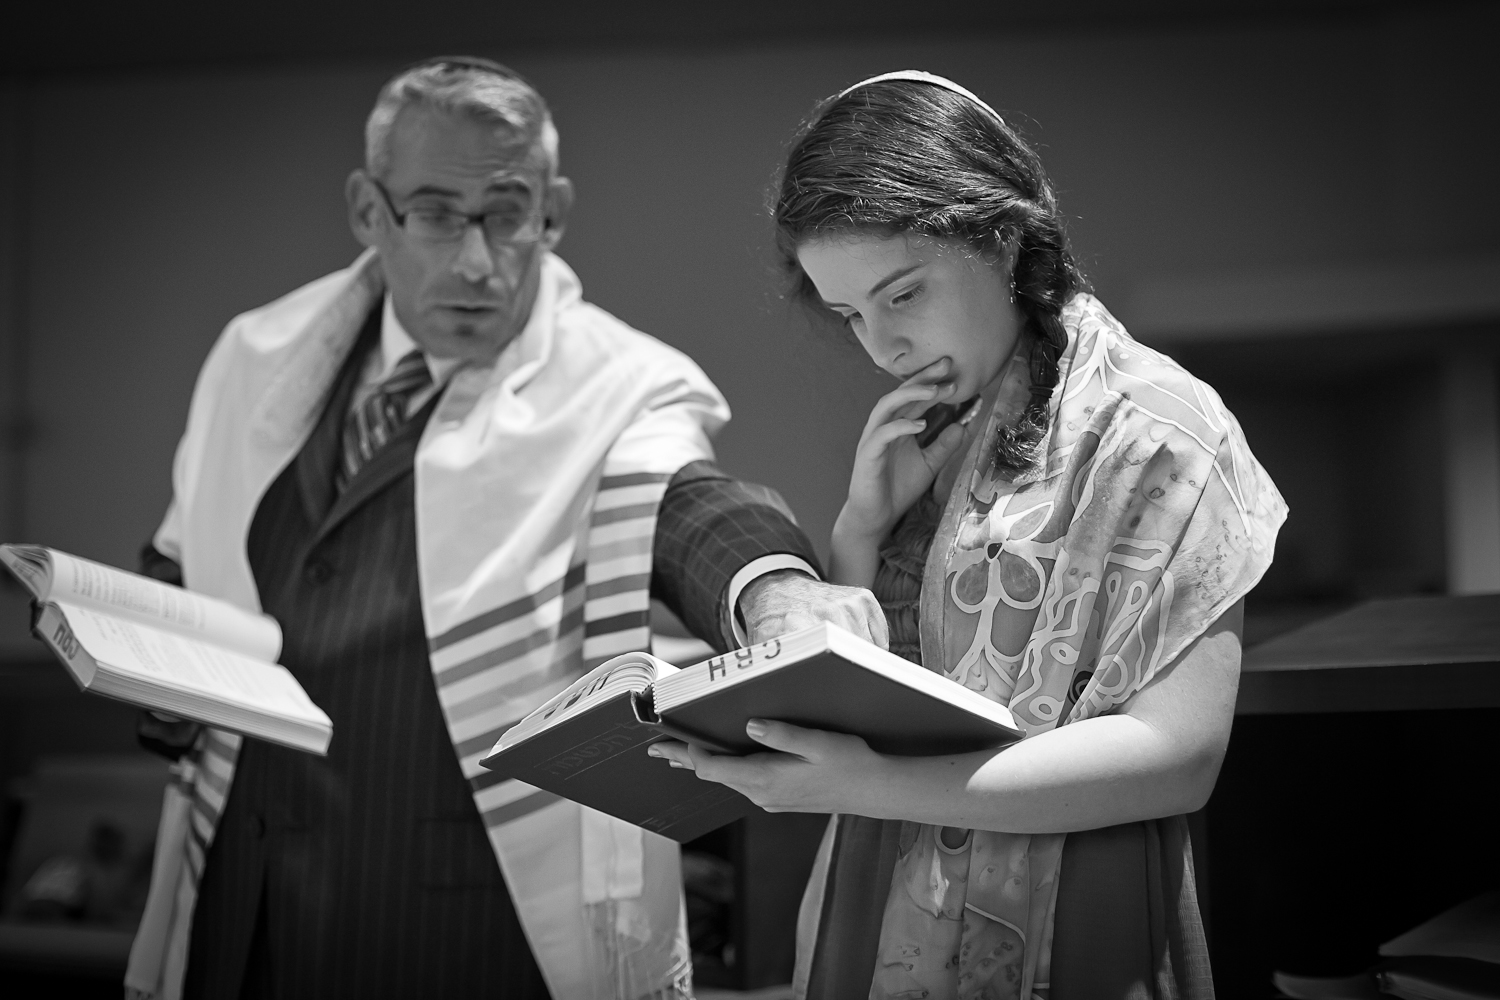 Photgraphy from Bat Mitzvah Rehearsal